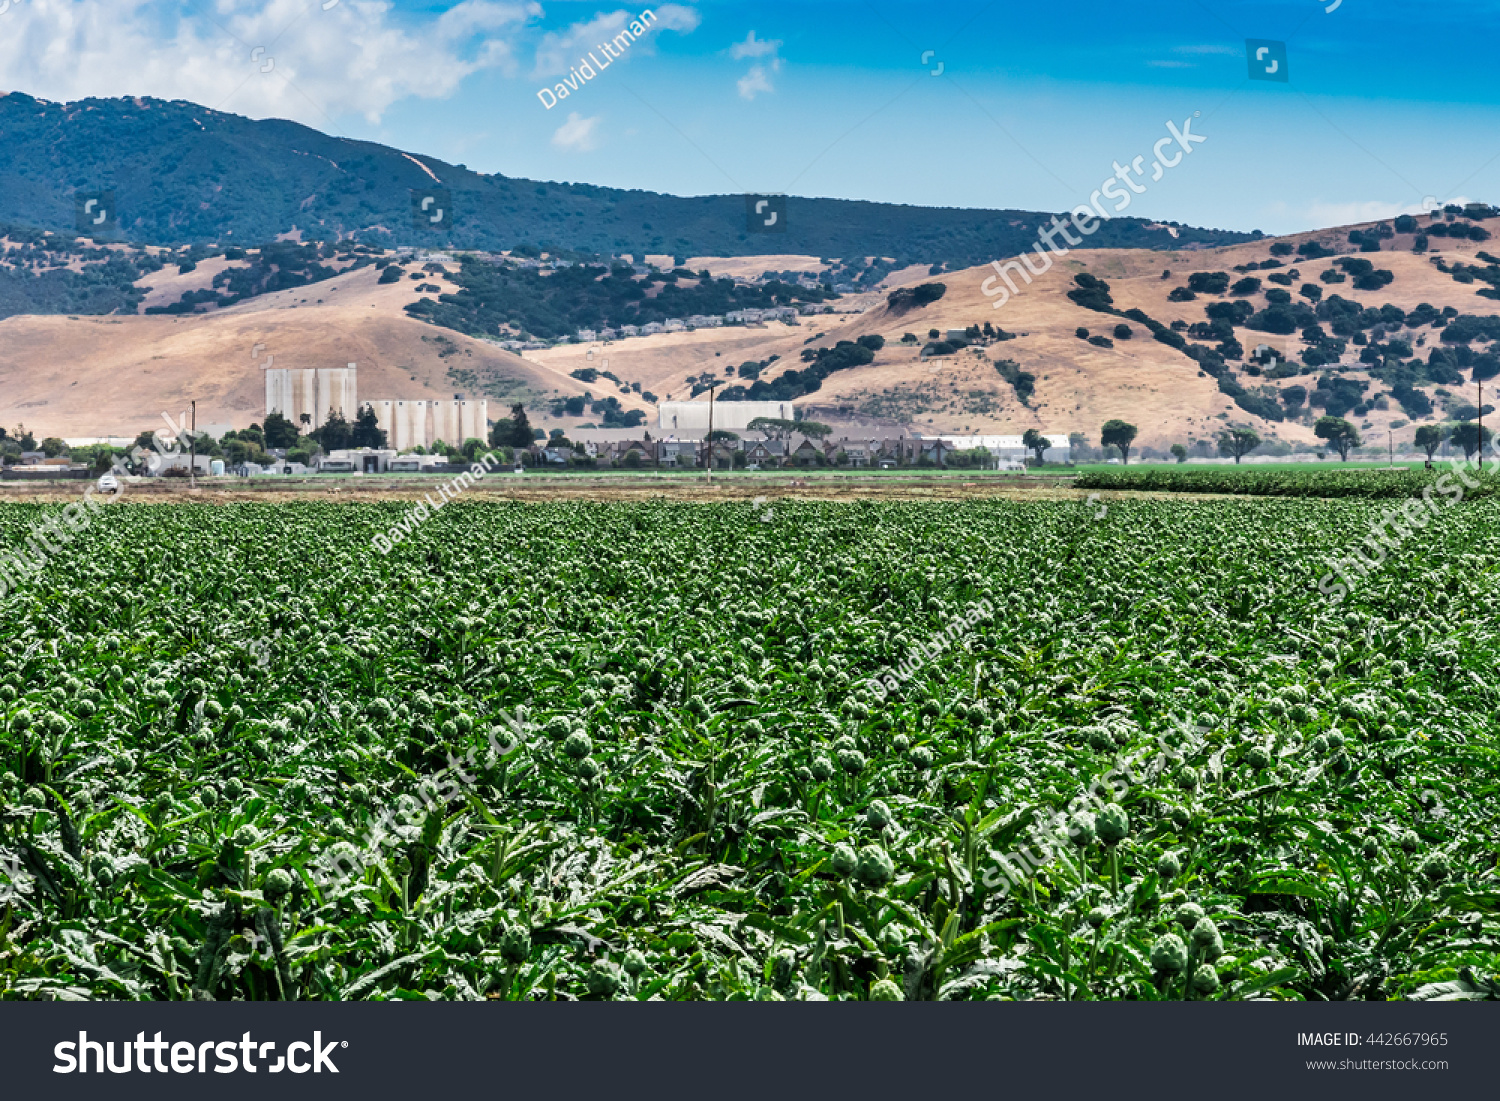 """A field of artichokes grow in the Salinas Valley, the agricultural hub known as """"the salad bowl of the world"""", in central California."""